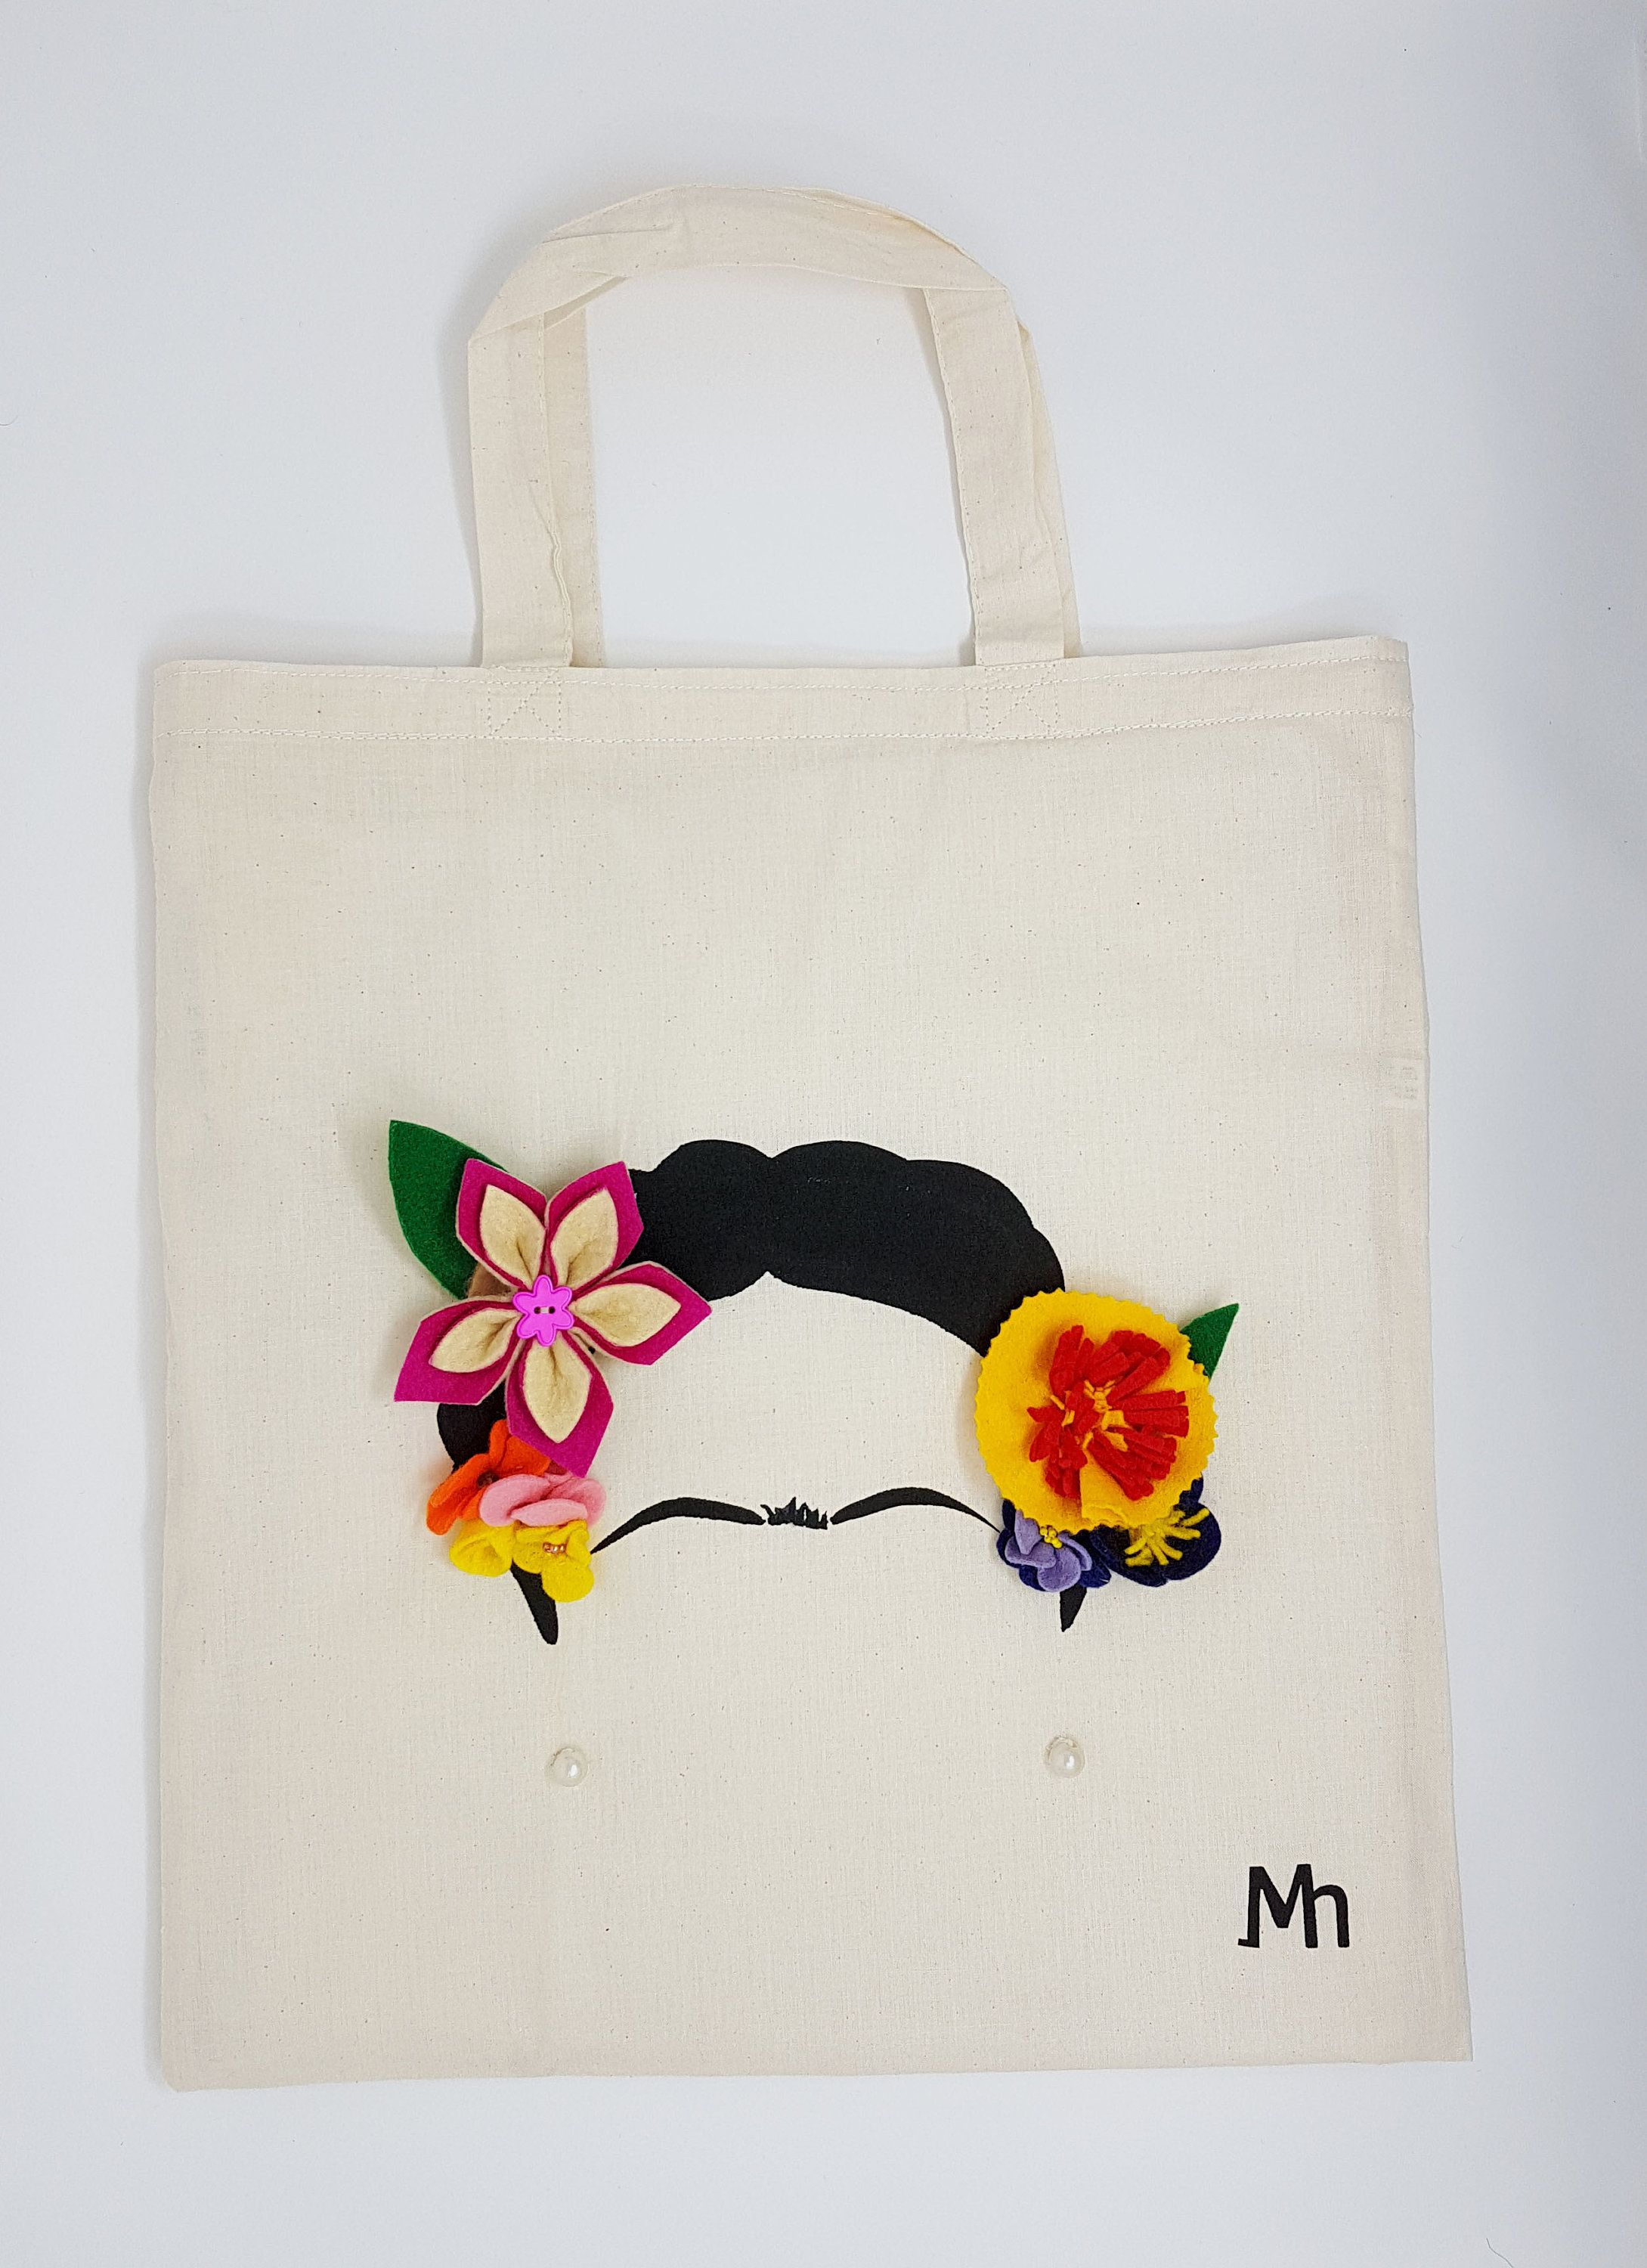 Tote Bag Frida Kahlo A Shopping Bag To Celebrate Women Strength